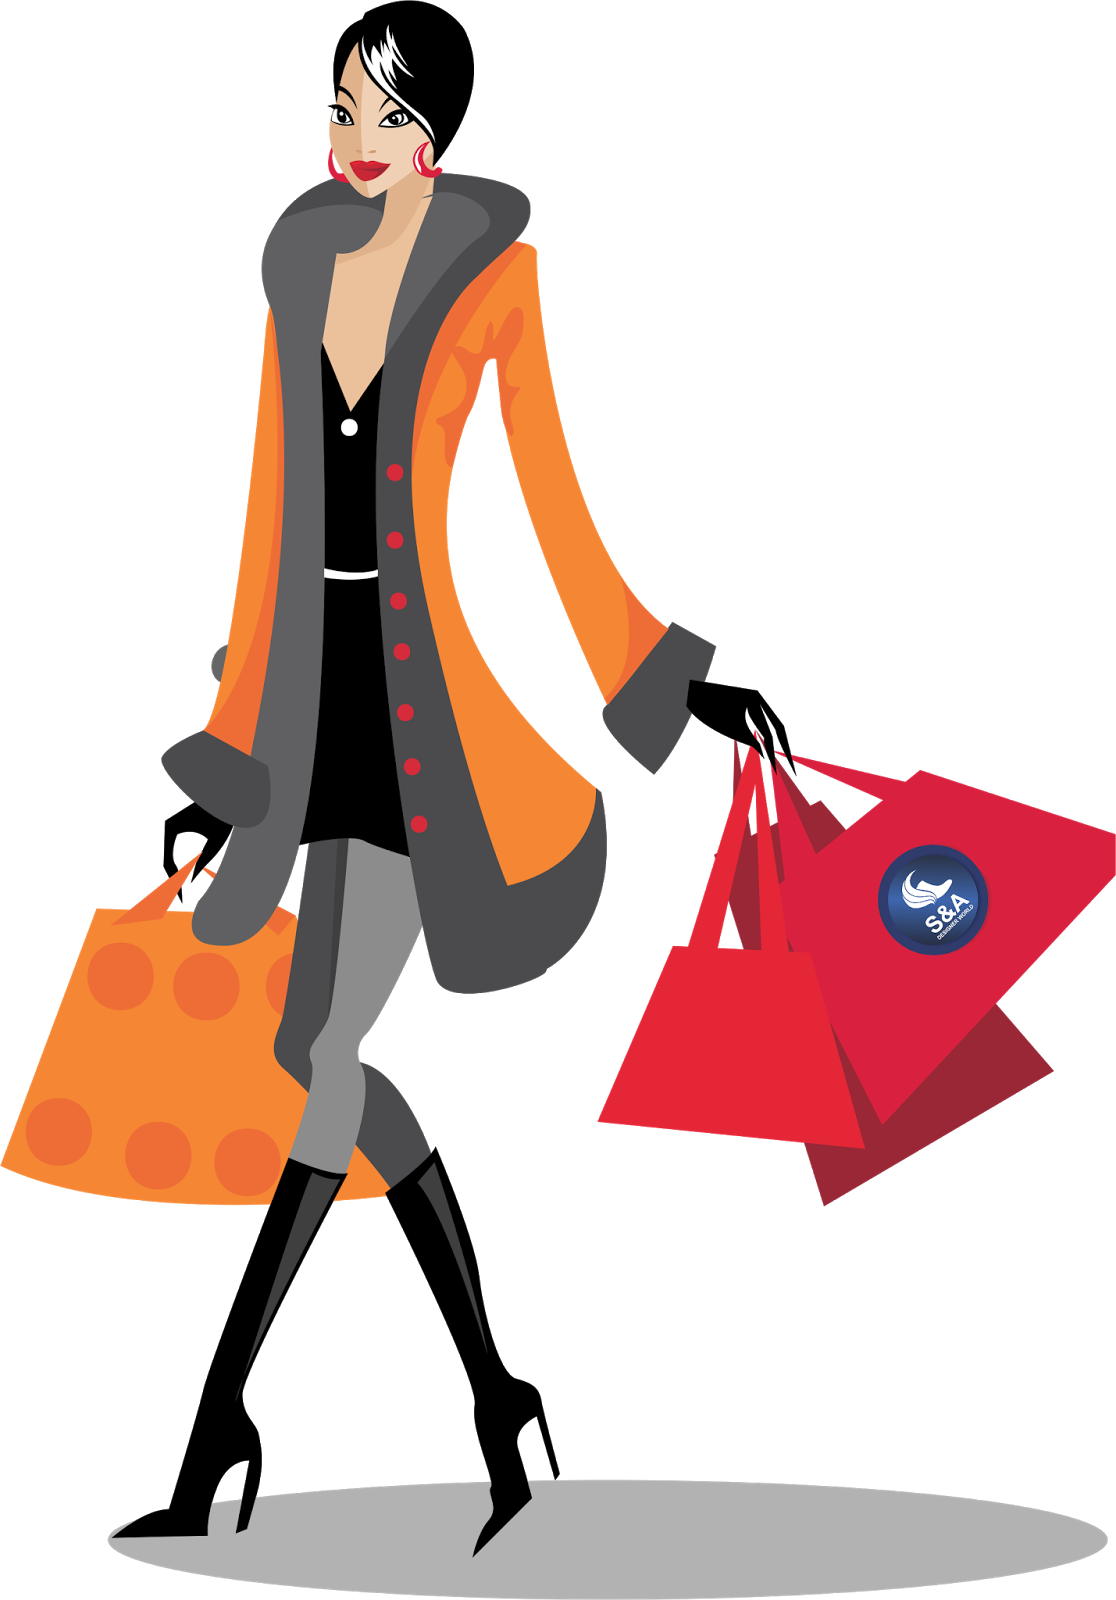 Girly clipart shopping. Tips and tricks for